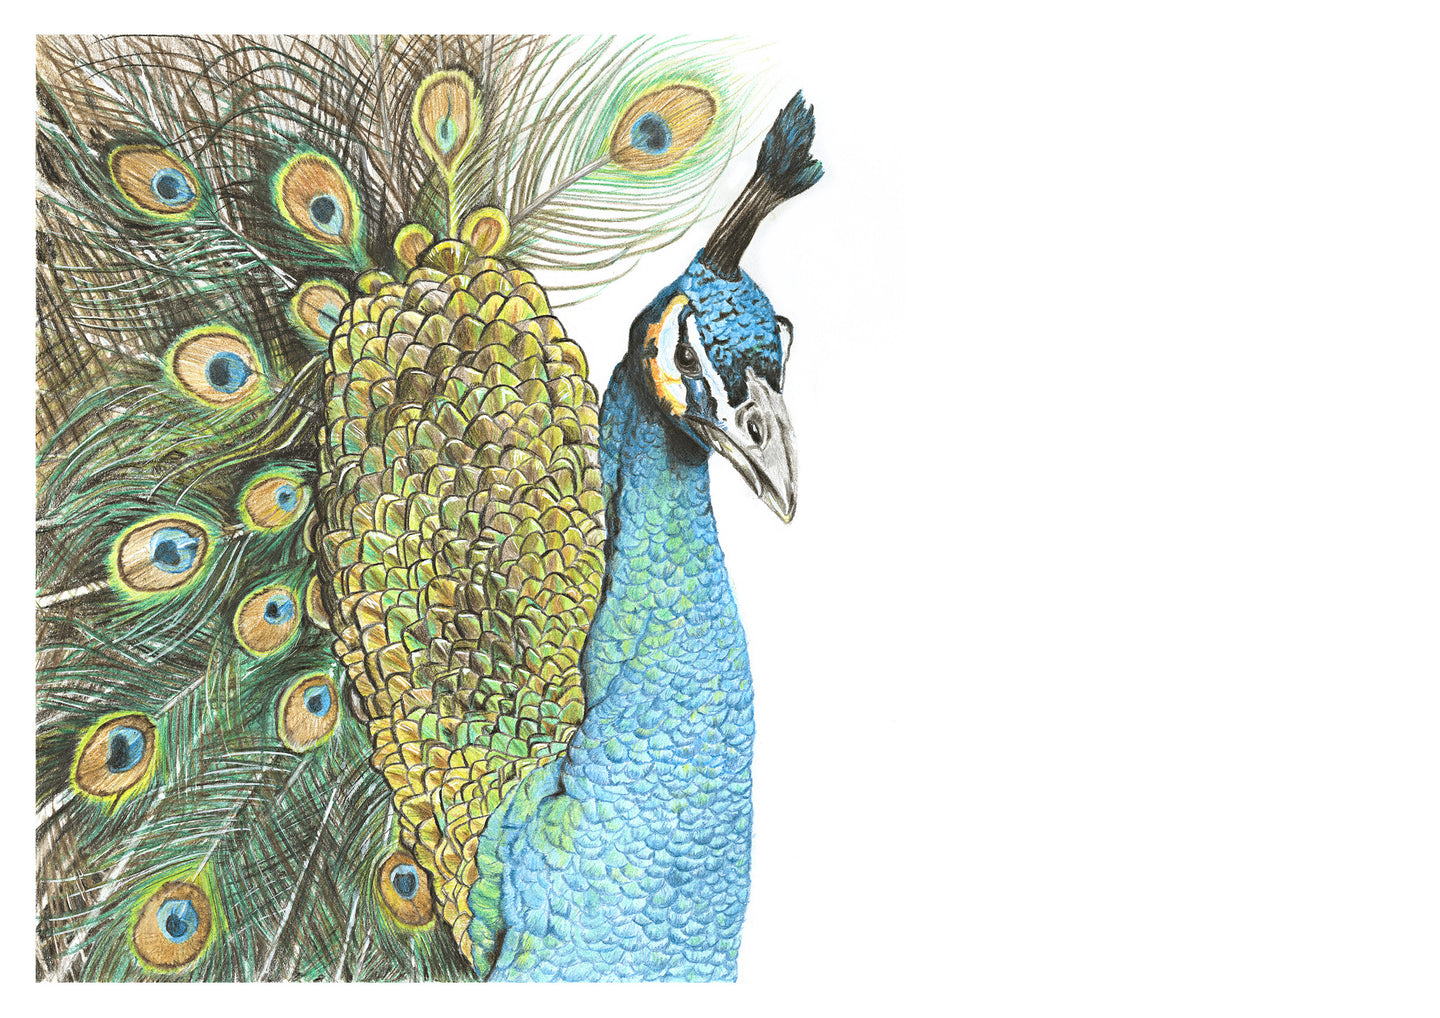 Art print of beautiful original coloured pencil peacock drawing by Judy Century. Elegant and proud, the peacock is decorative and has a high level of detail.